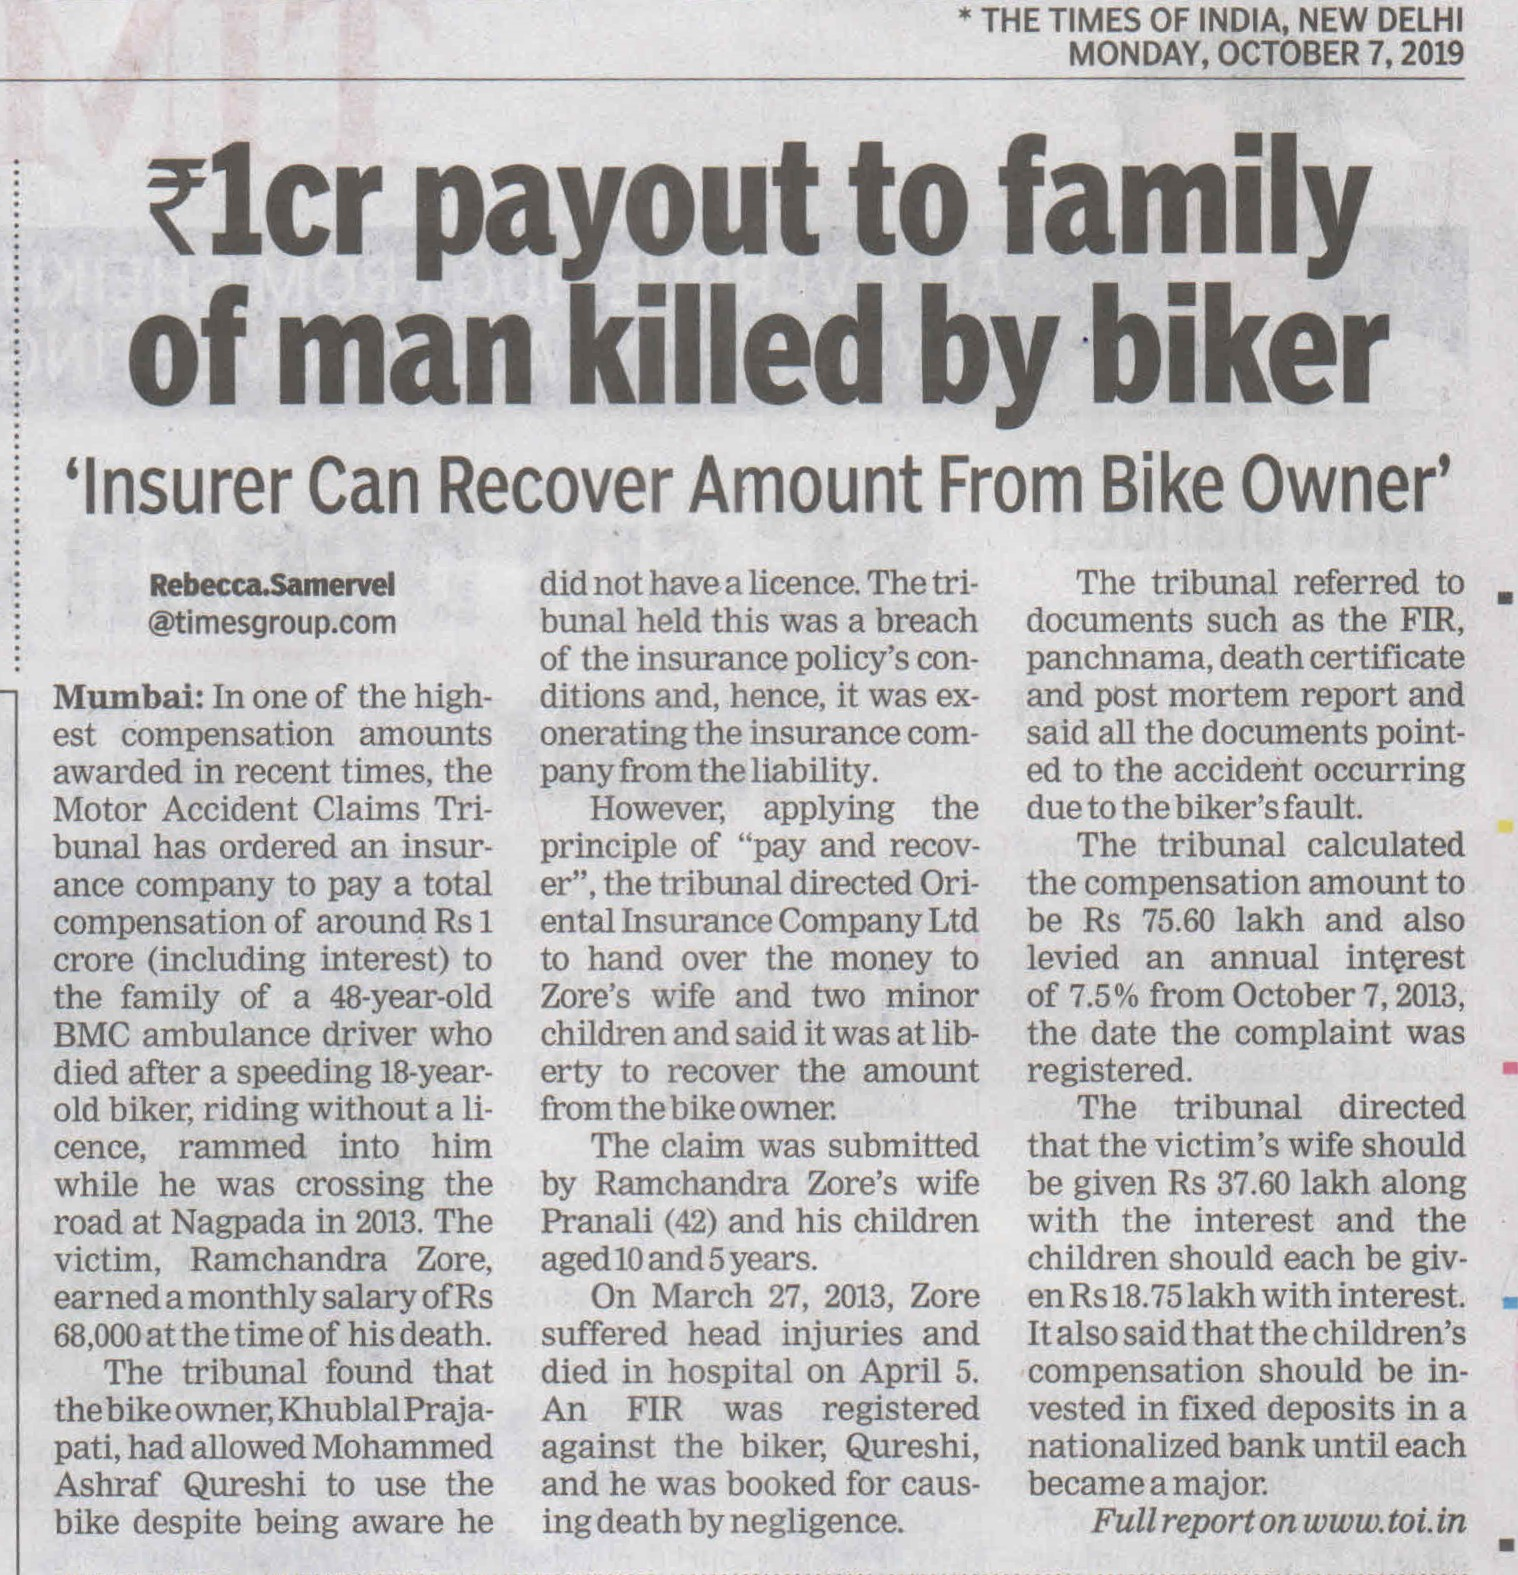 Rs. 1 Cr. payout to family of man killed by biker